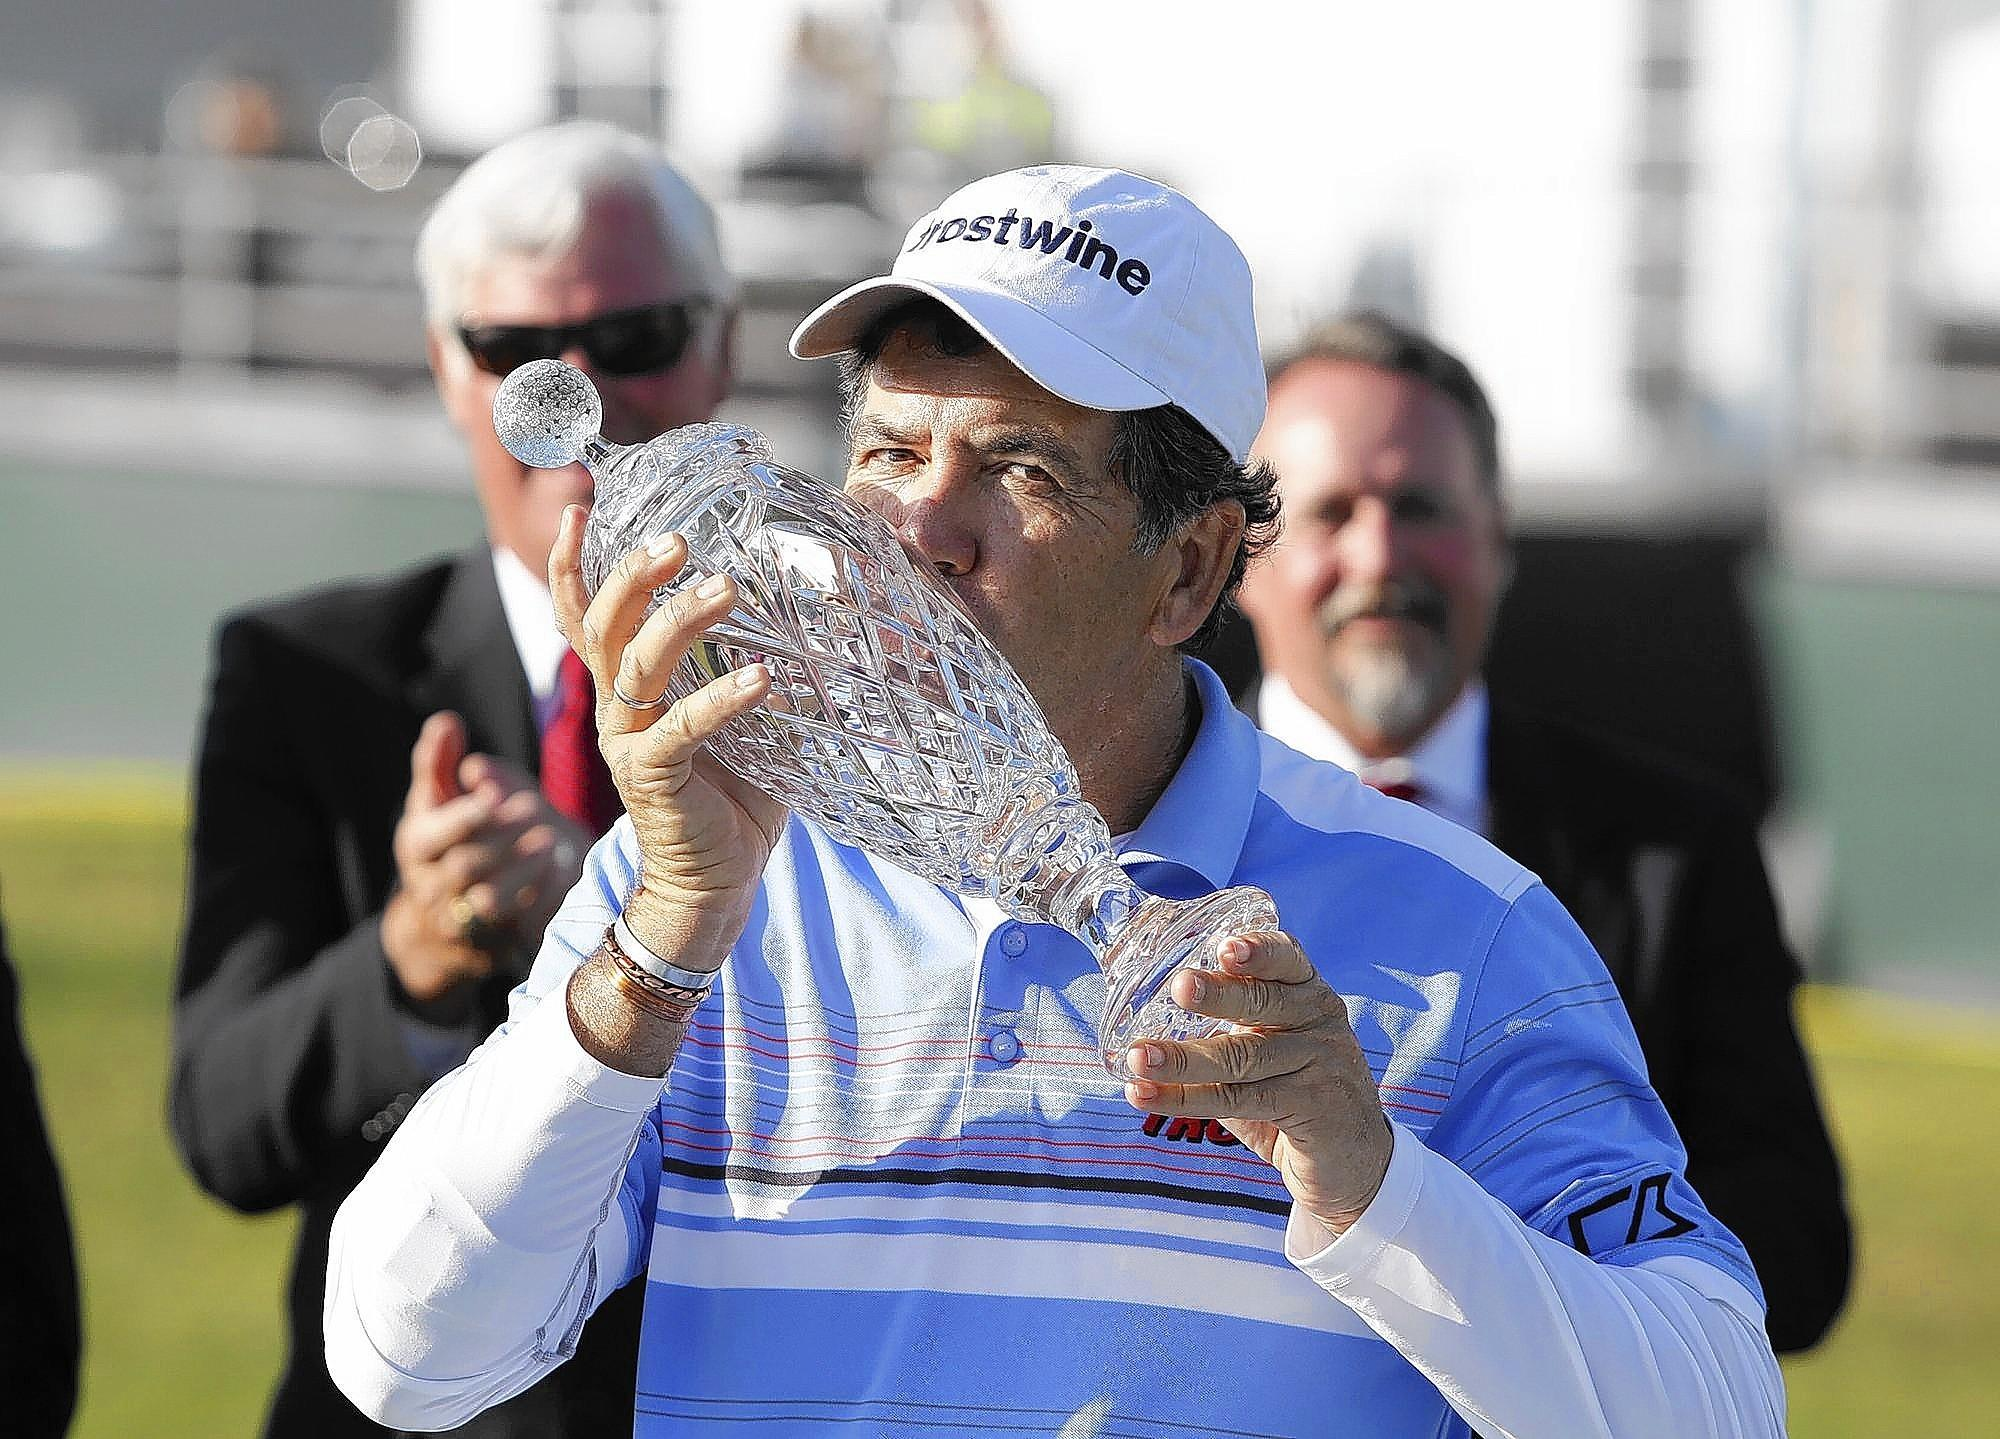 David Frost kisses the trophy after winning the 2013 Toshiba Classic at Newport Beach Country Club.